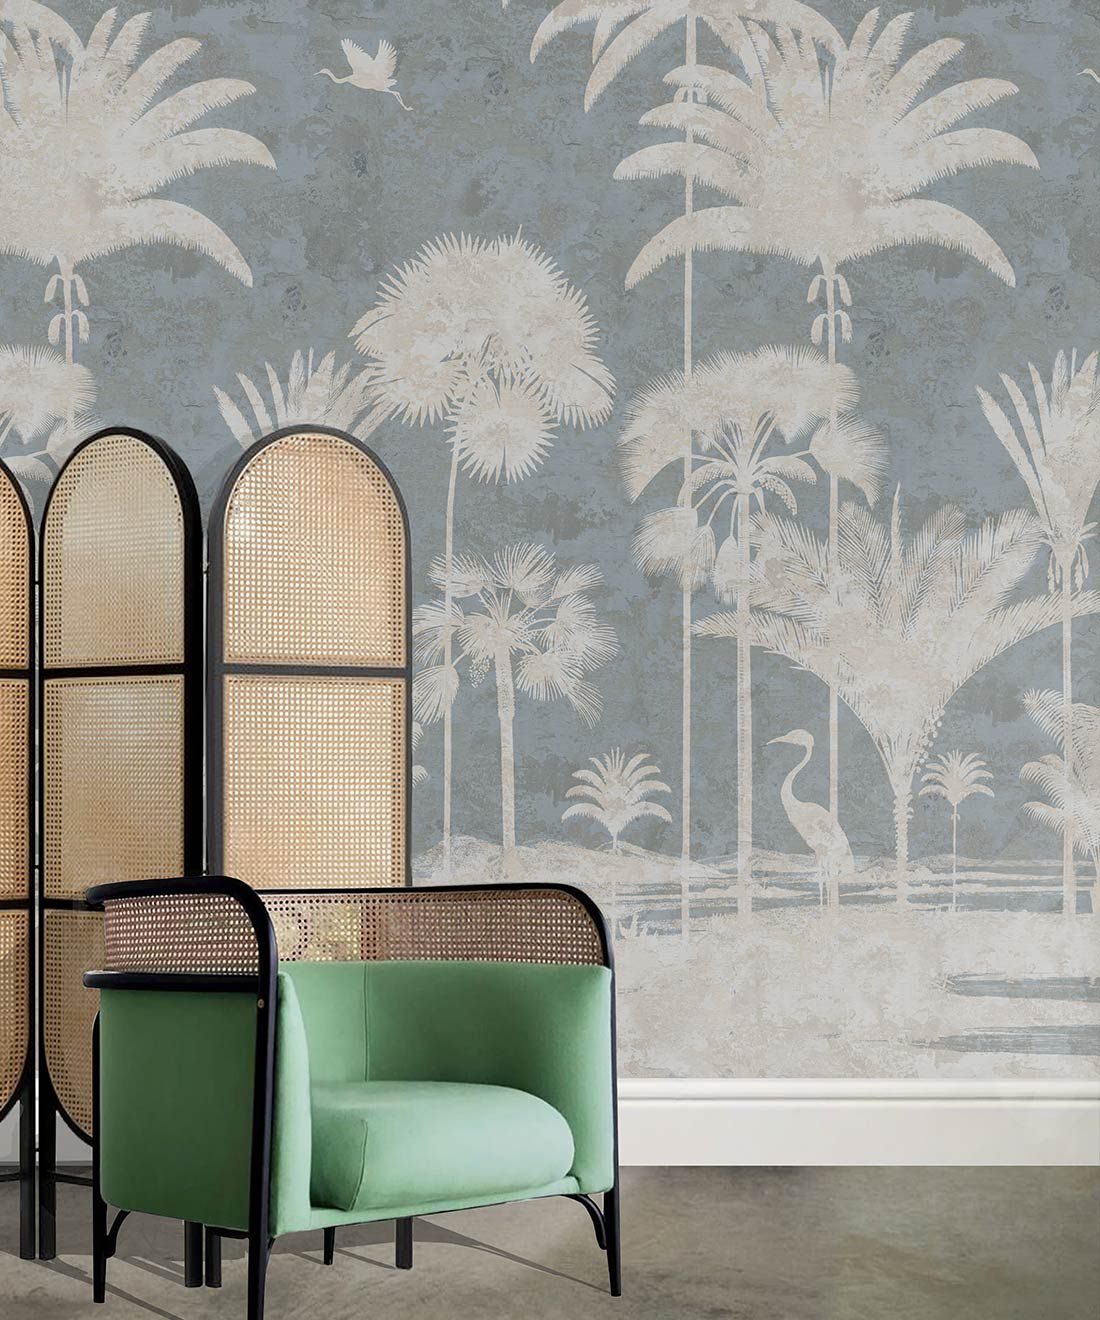 Shadow Palms Wallpaper Mural •Bethany Linz • Palm Tree Mural • Blue • Insitu with mint green chair